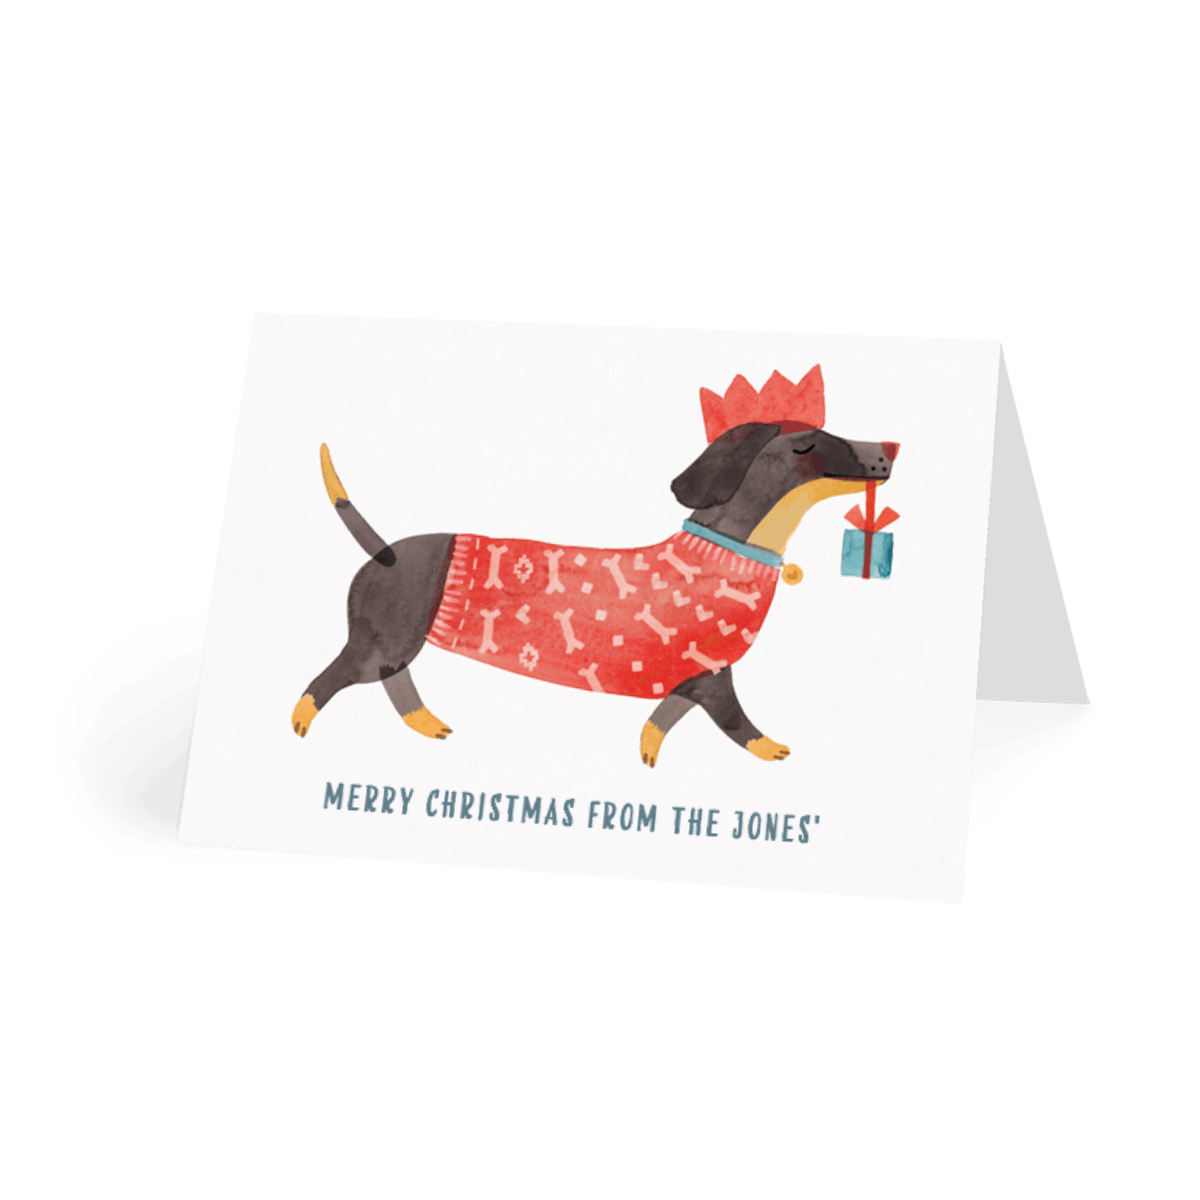 Https%3a%2f%2fwww.papier.com%2fproduct image%2f28907%2f14%2fchristmas dachshund 7261 front 1567715441.png?ixlib=rb 1.1